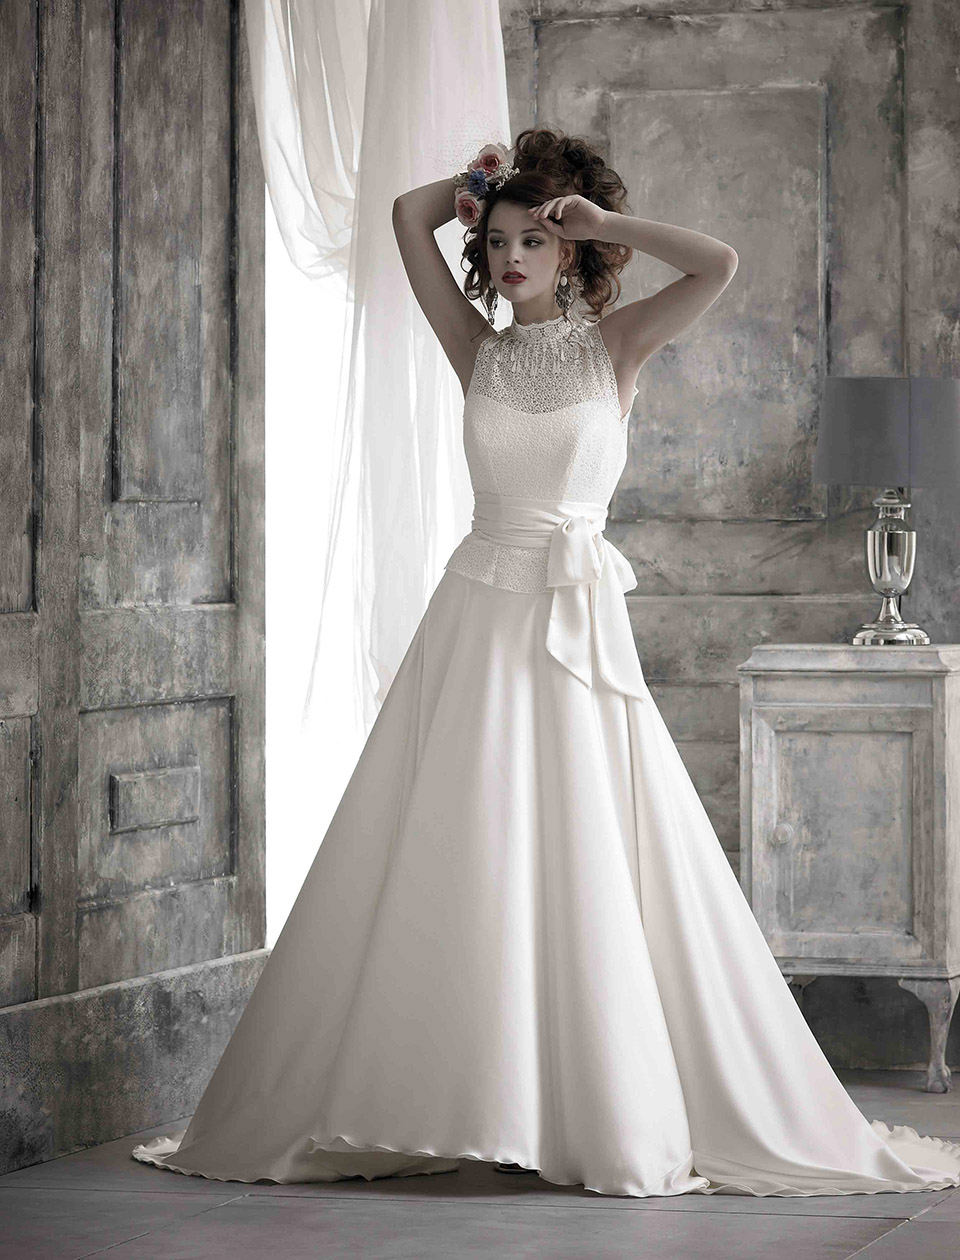 Bridal Trends 2016 - The Wedding Dress! - Pink Confetti Brides ...